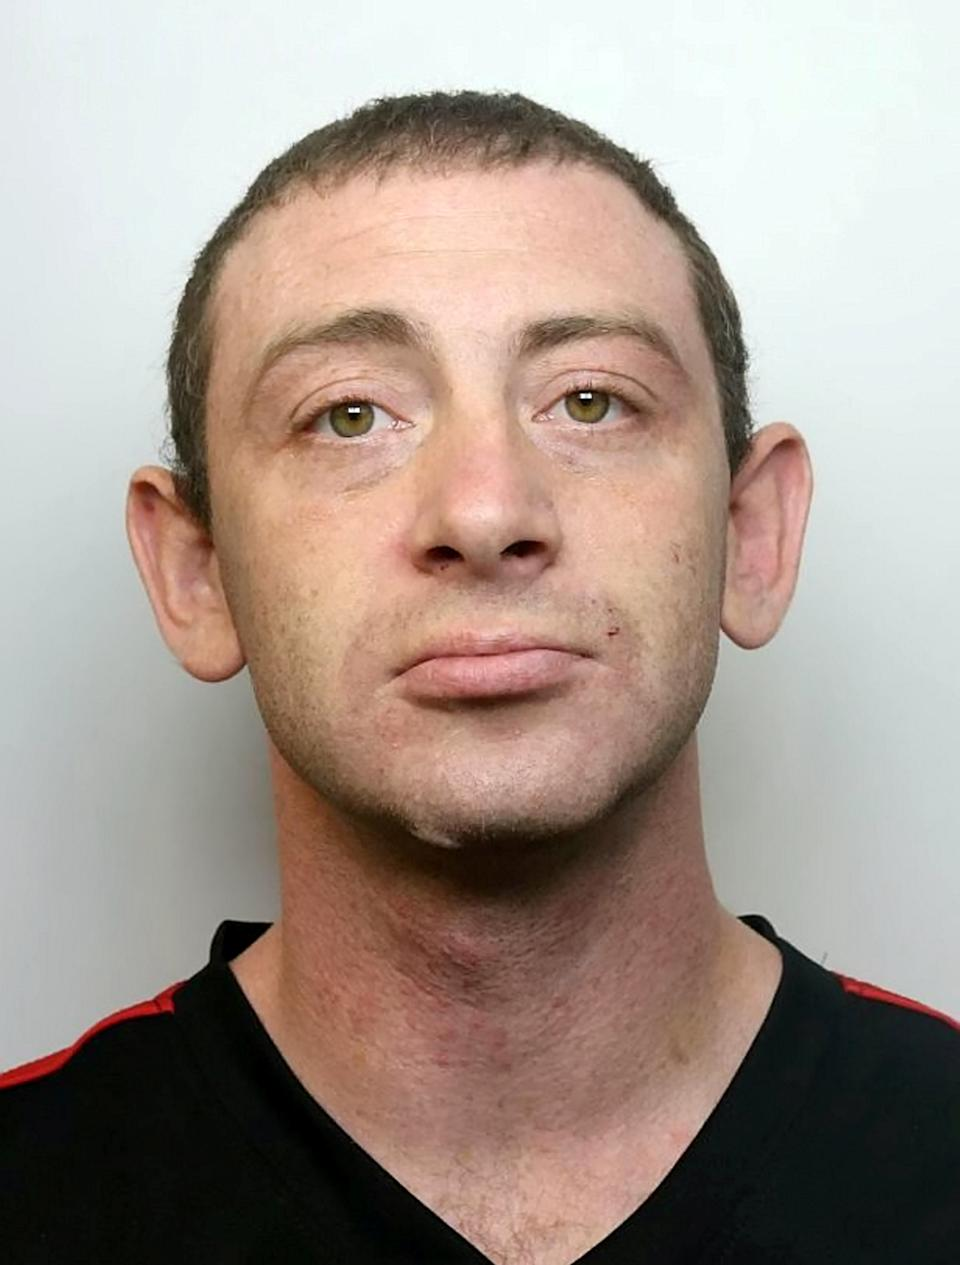 Craig Gibbs.  A man who was recorded speeding at more than 100mph on the M5 in Somerset while under the influence of drugs has today (Wednesday 25 November) been jailed for 16 months.  See SWNS story SWBRchase.  Craig Gibbs was disqualified from driving when officers from the Roads Policing Unit received reports that he was driving a green Ford Focus on the A38 near Bridgwater on Monday 5 October. After he failed to stop for police, a pursuit commenced.  The 32-year-old reached speeds of 100mph as officers pursued him on the M5 to Wellington and back, eventually exiting at Junction 23 towards Bridgwater.  Having exited the motorway, Gibbs was seen to ignore red lights and drive on the wrong side of the road as he tried to evade police.  After turning onto a side road and colliding with several cars, officers were able to detain Gibbs when his car became wedged between parked vehicles, despite him attempting to force the vehicle through.  He was arrested on suspicion of dangerous driving, driving whilst disqualified and failing to stop for police. Cannabis was seized from him and following a drugs test, he was later arrested for driving whilst unfit through drugs.